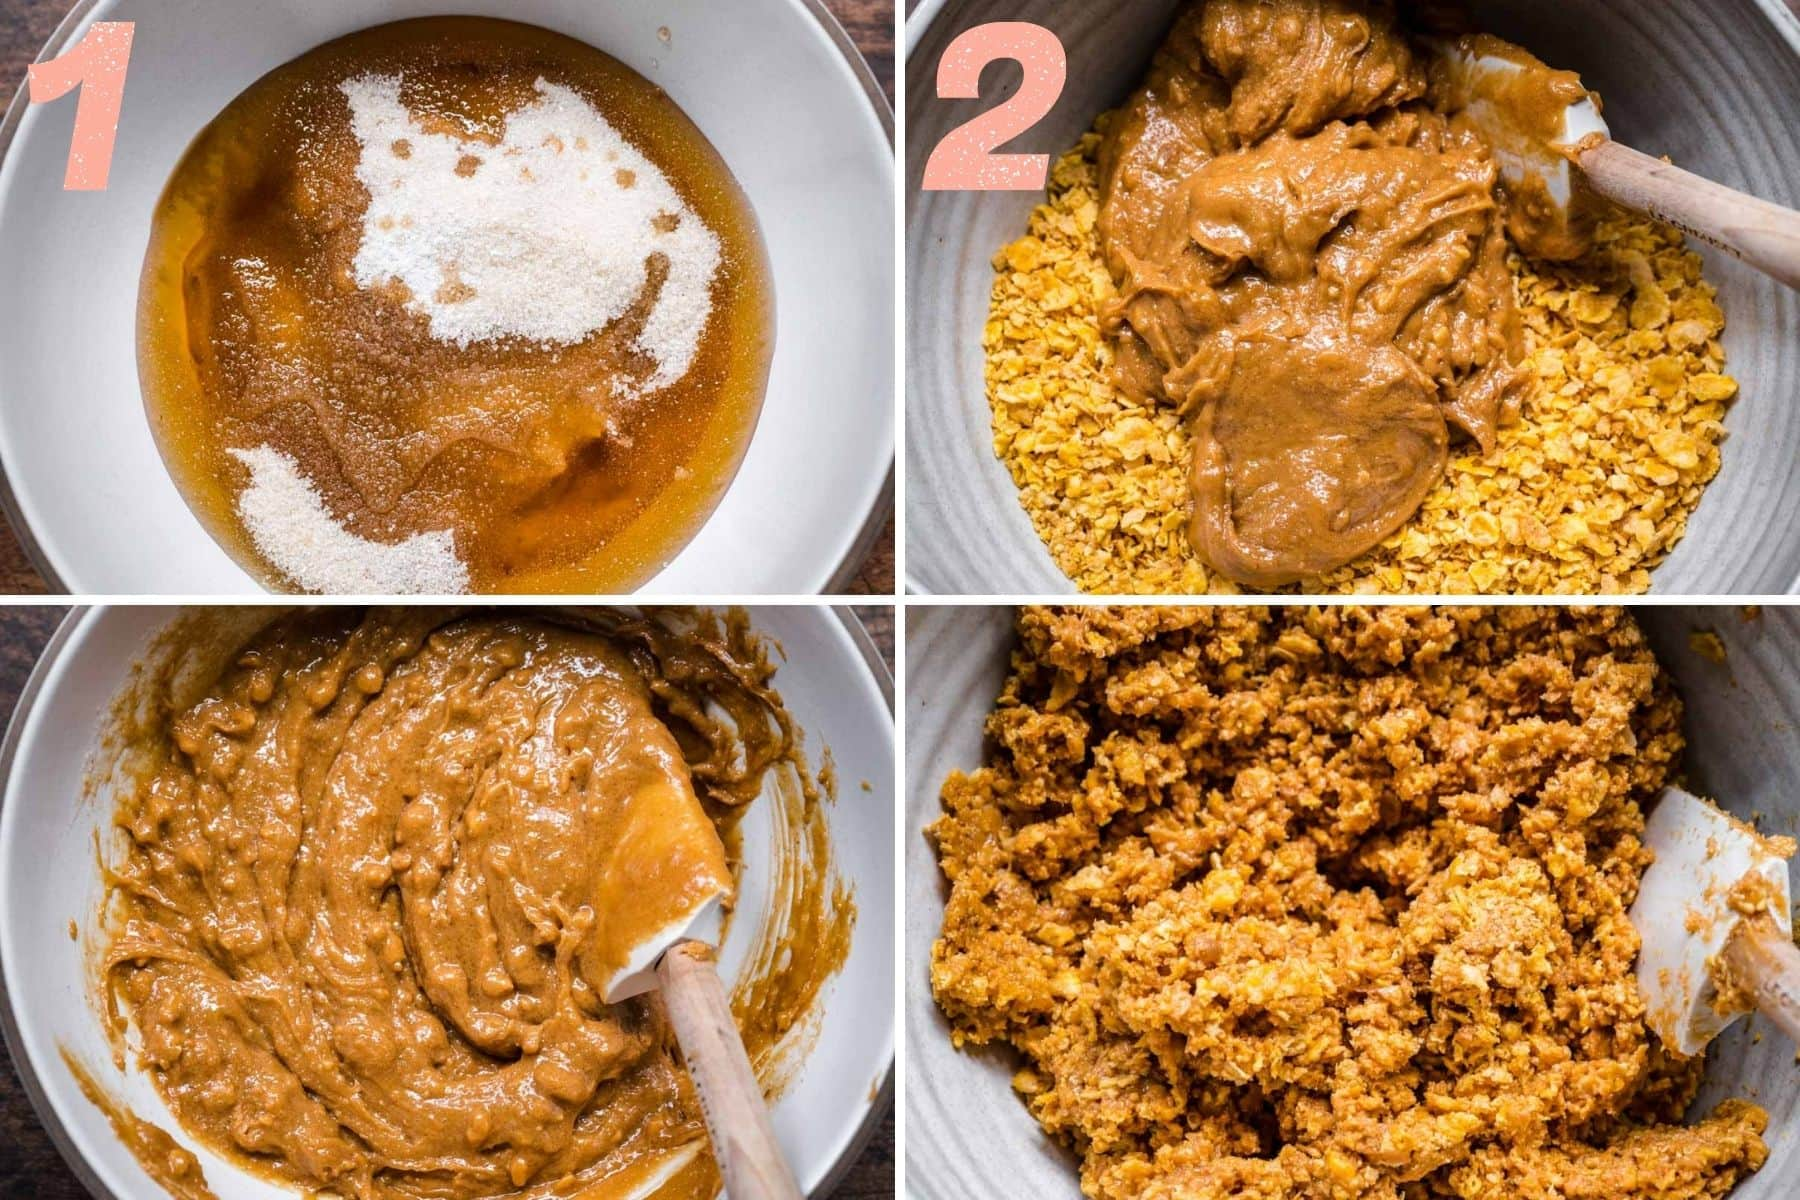 On the left: peanut butter stirred. On the right: cornflakes being stirred into peanut butter.